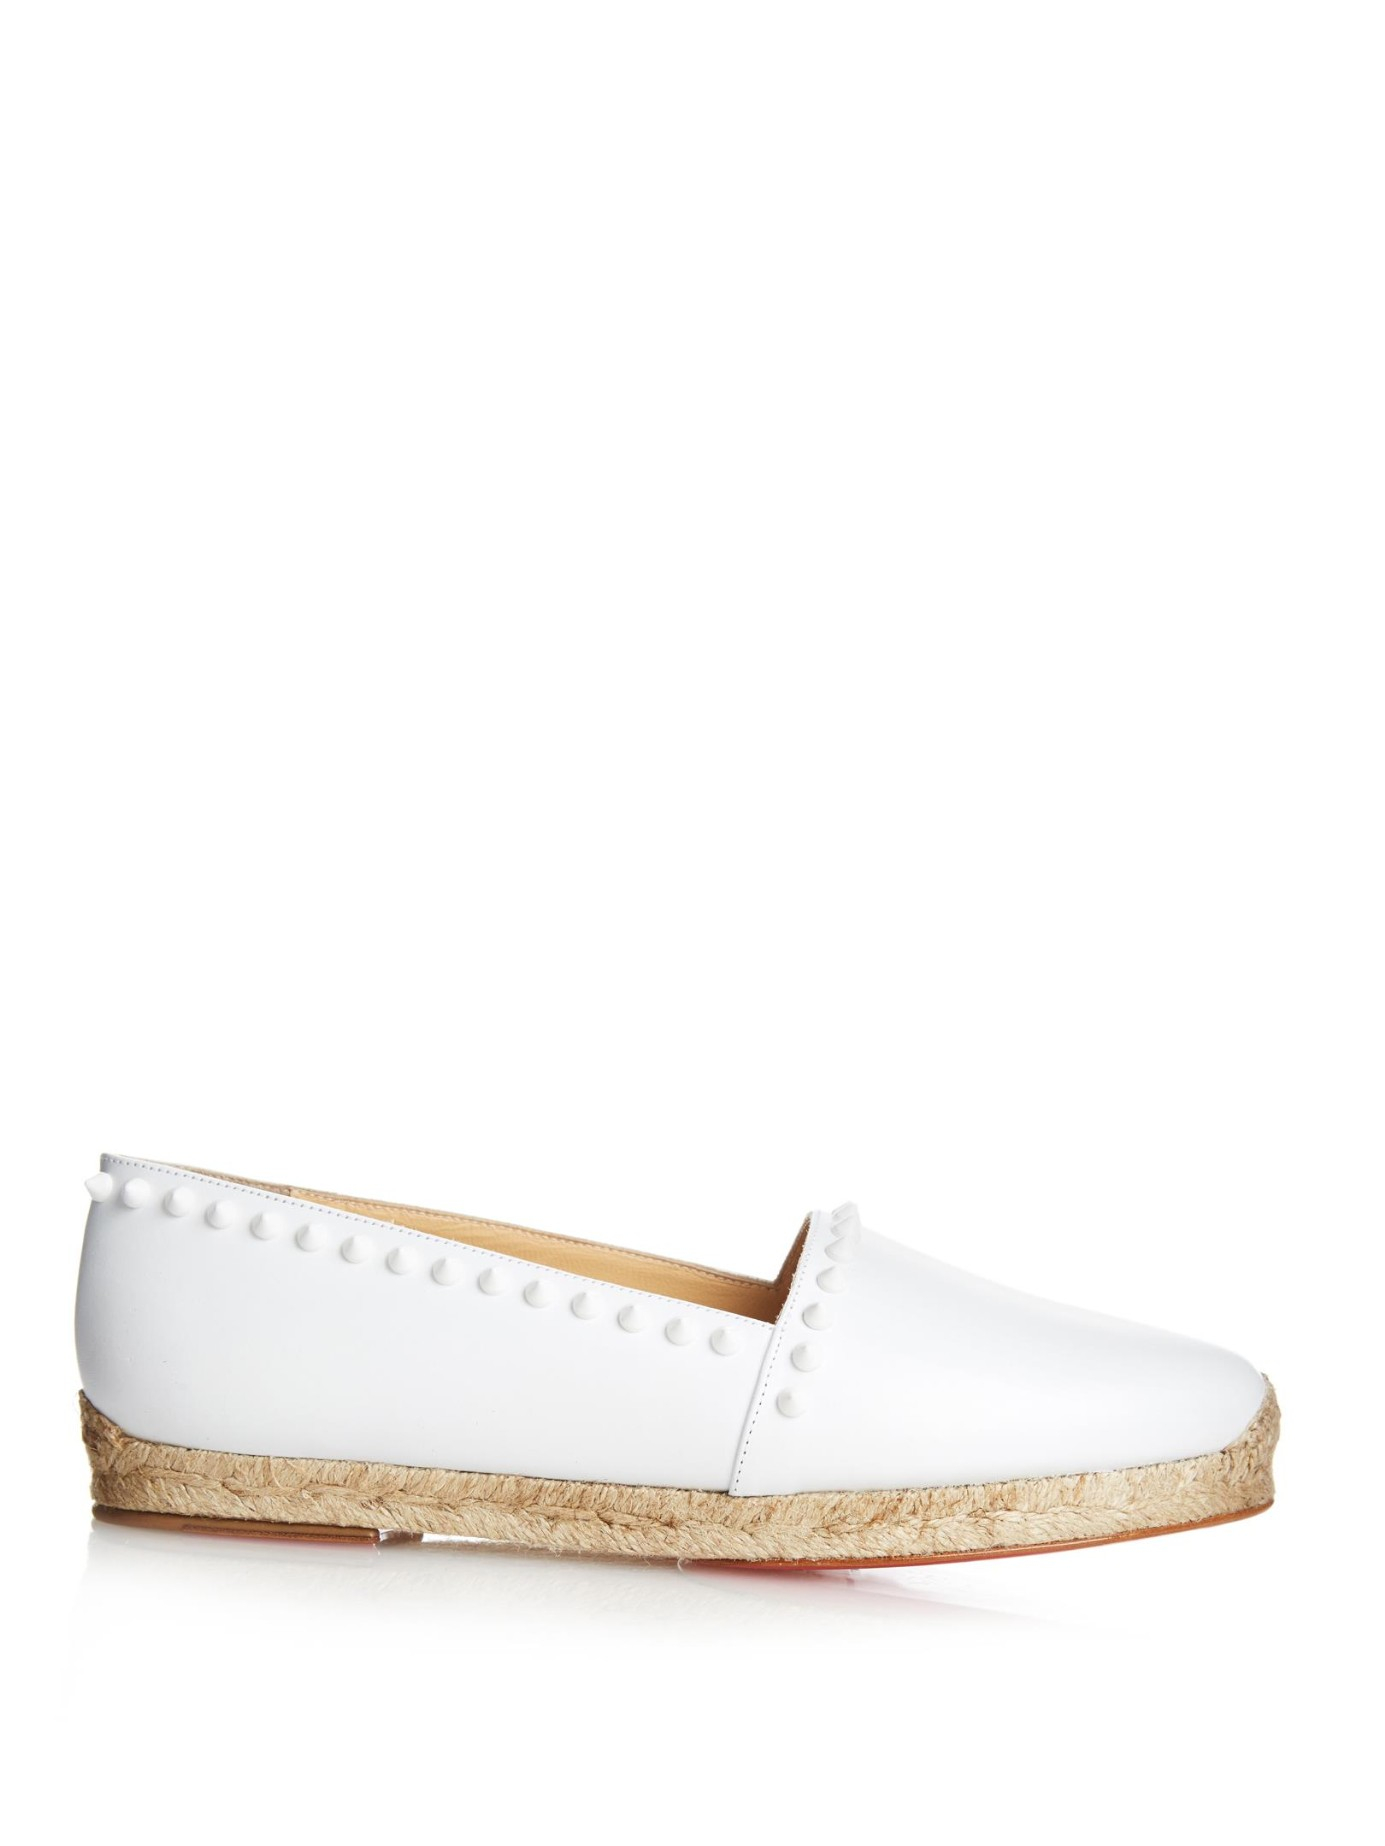 blue louboutins sneakers - Christian louboutin Ares Stud-Embellished Espadrilles in White | Lyst